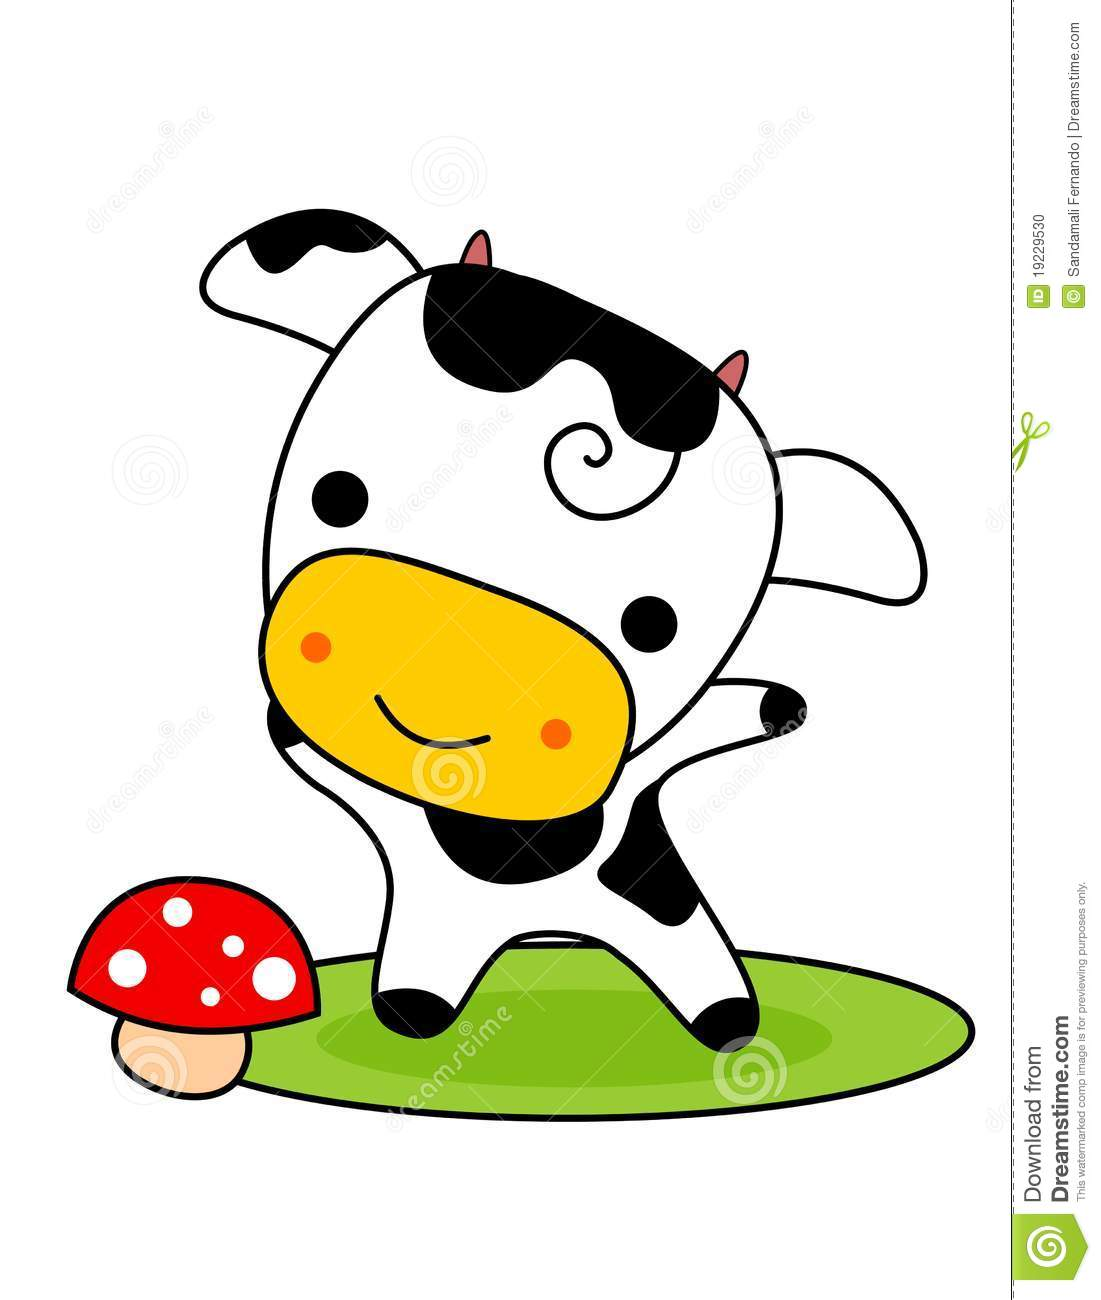 Little black and white cow isolated on white background.